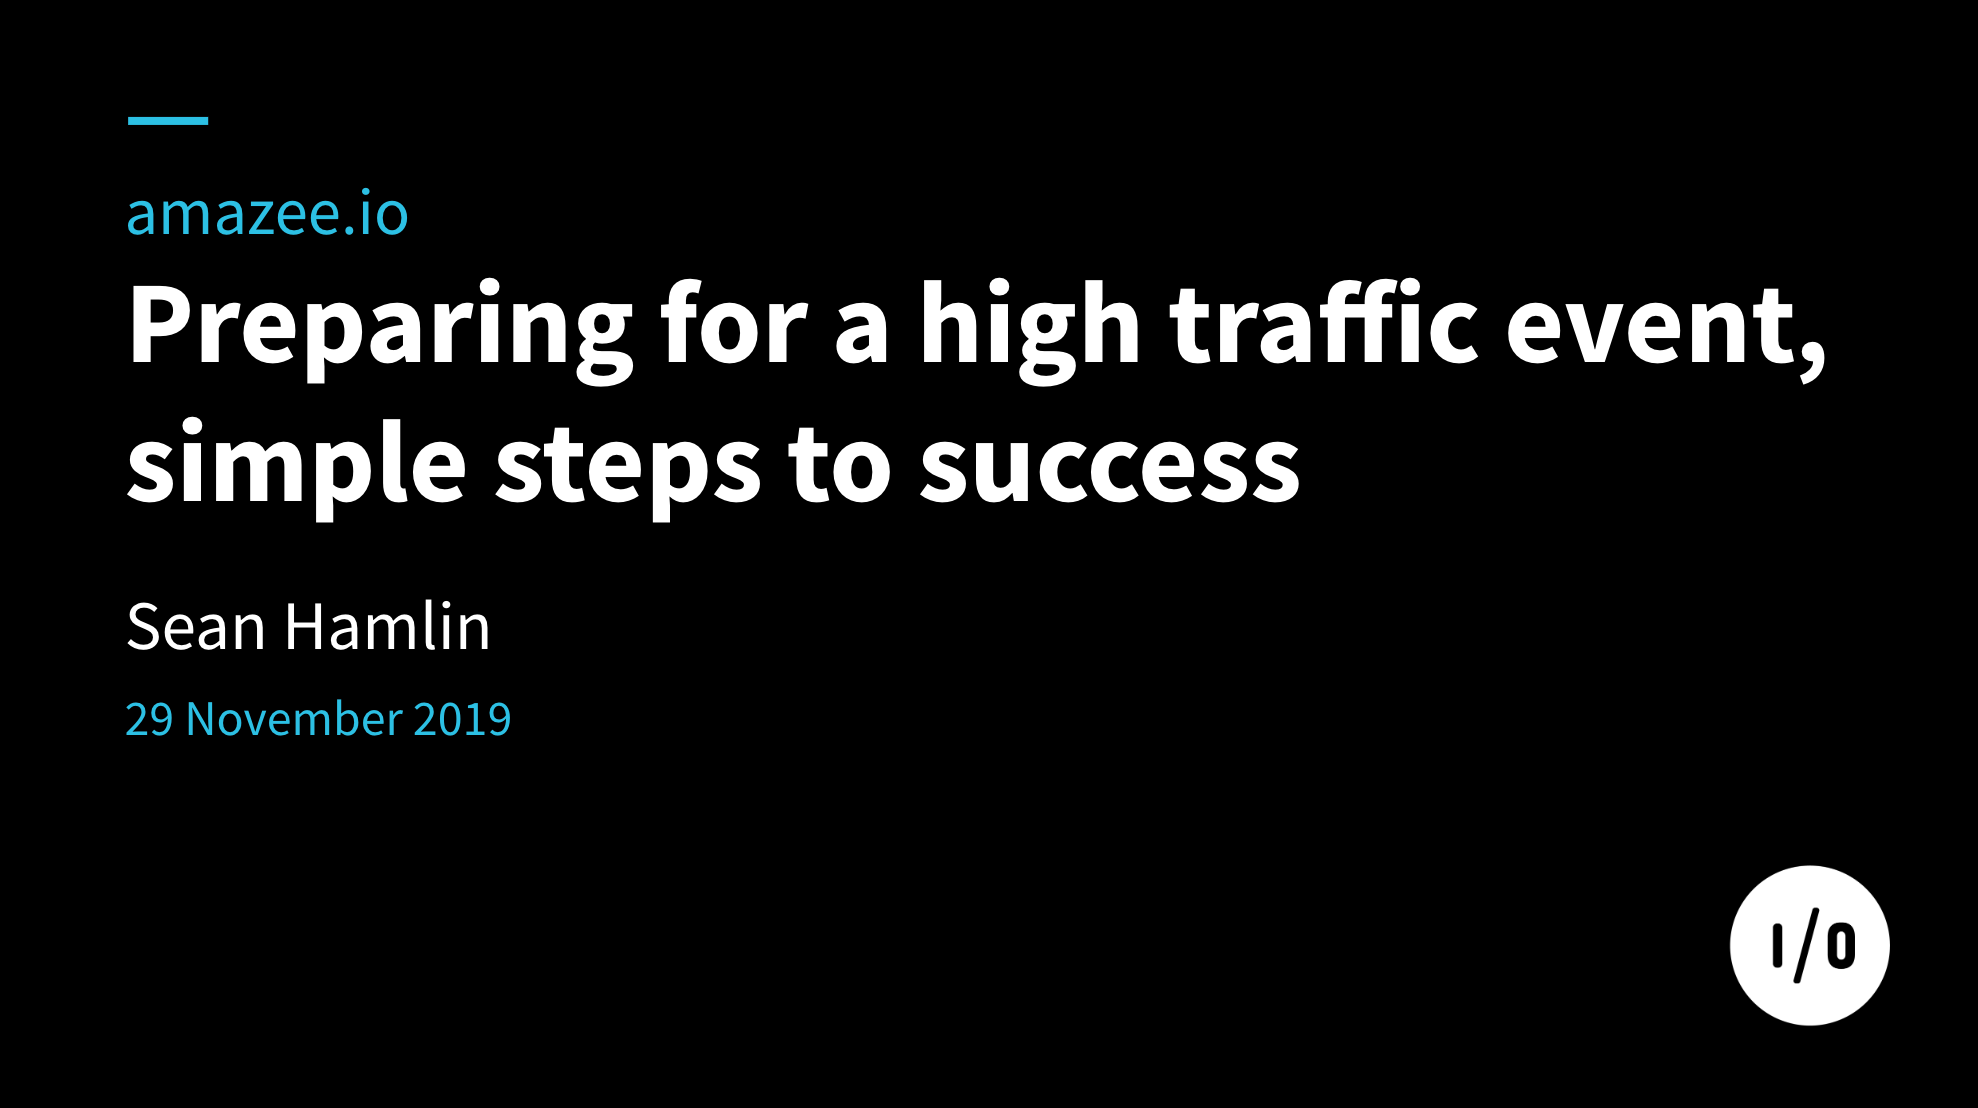 Preparing for a high traffic event, simple steps to success